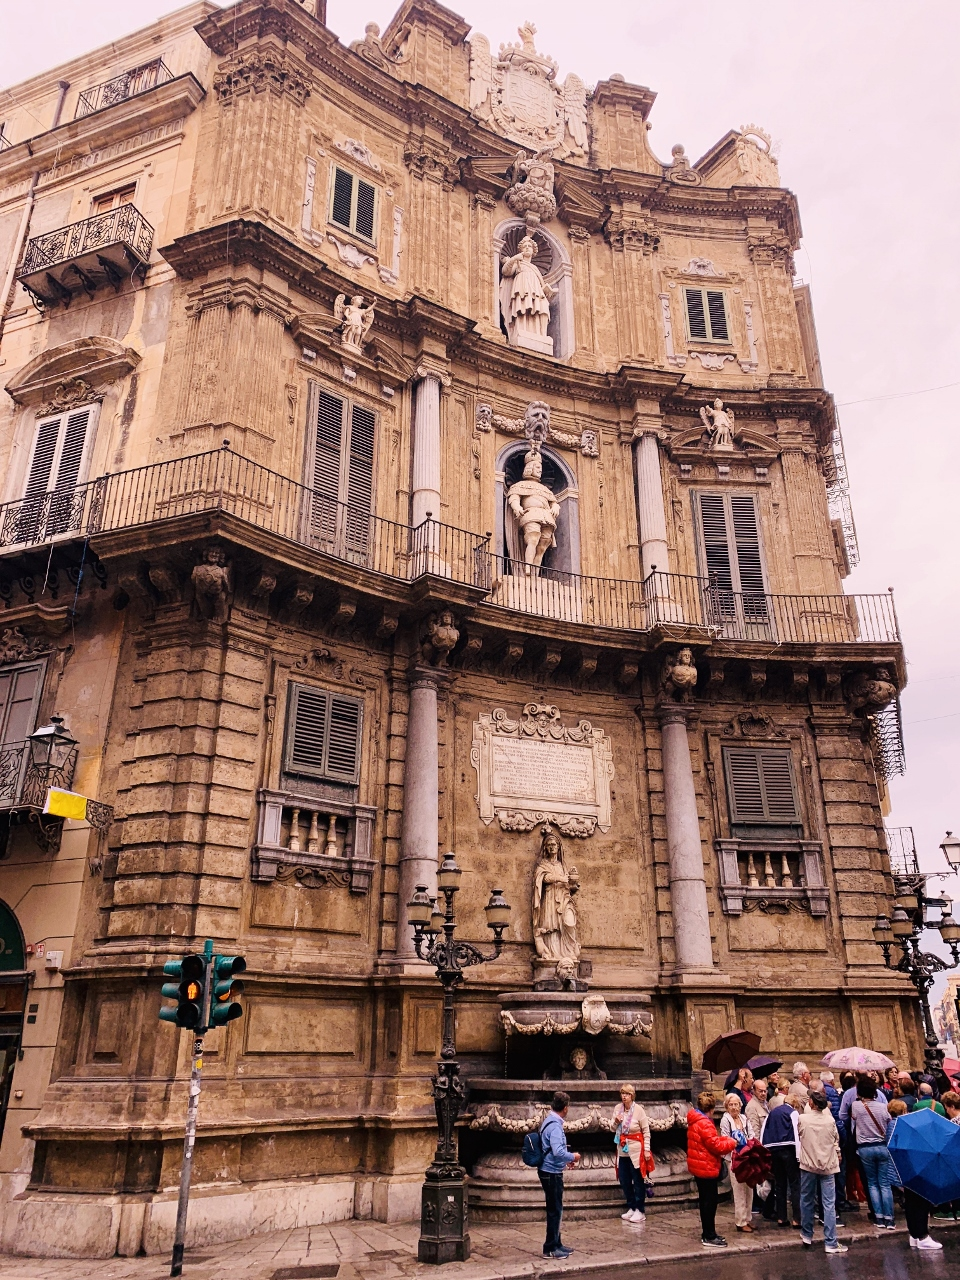 Travels to Sicily – Palermo & Monreale (Part 3 of 3) Image 16